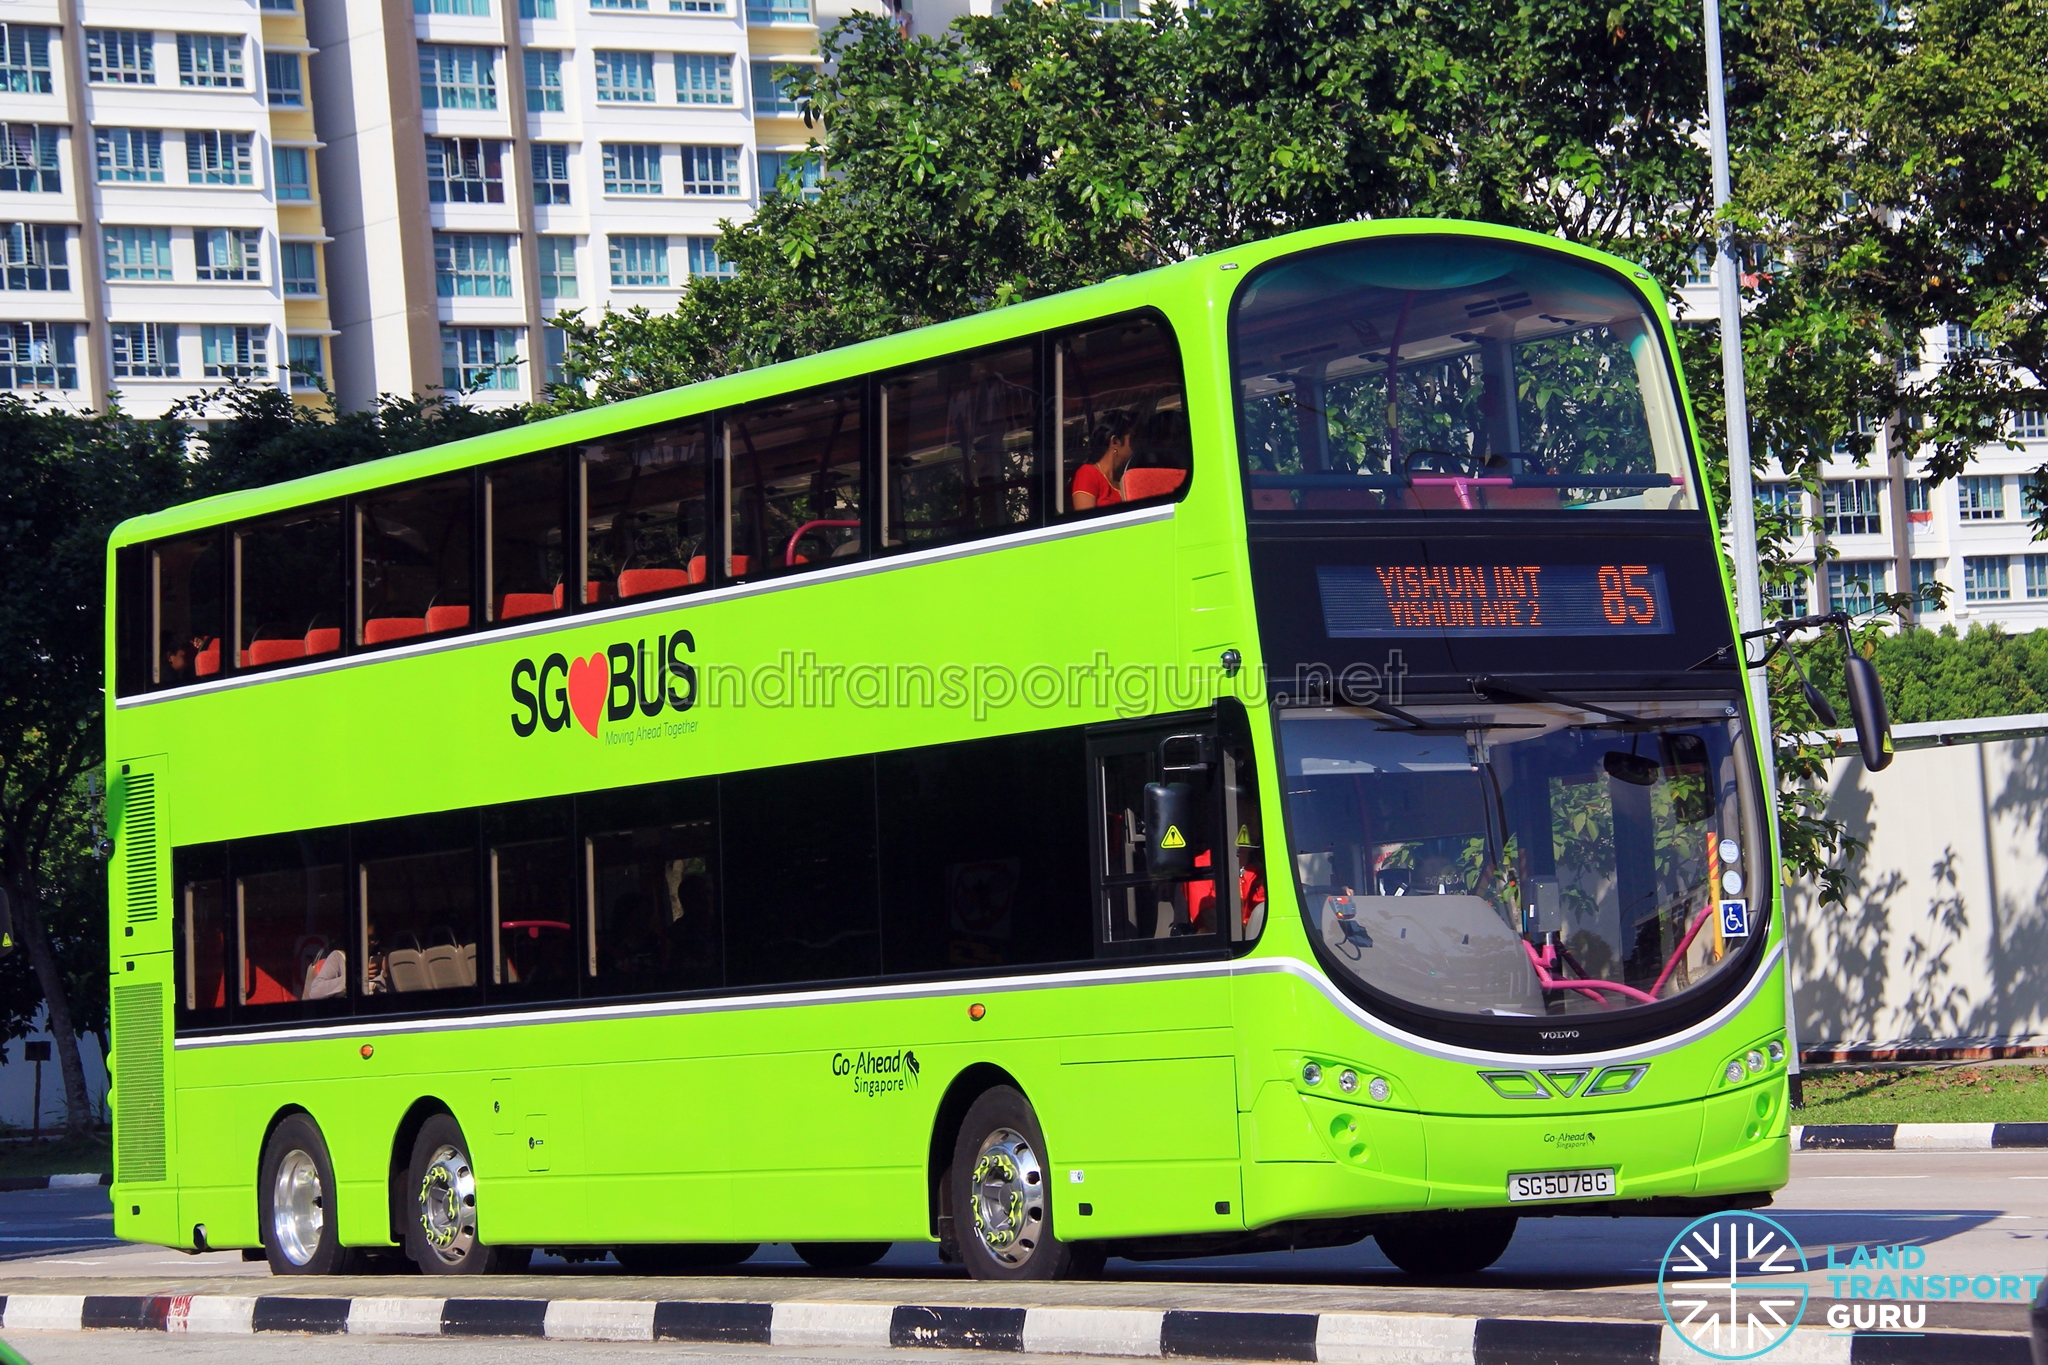 bus 85 syllabus2014fall 3 Review past exams and solutions for soa's exams.